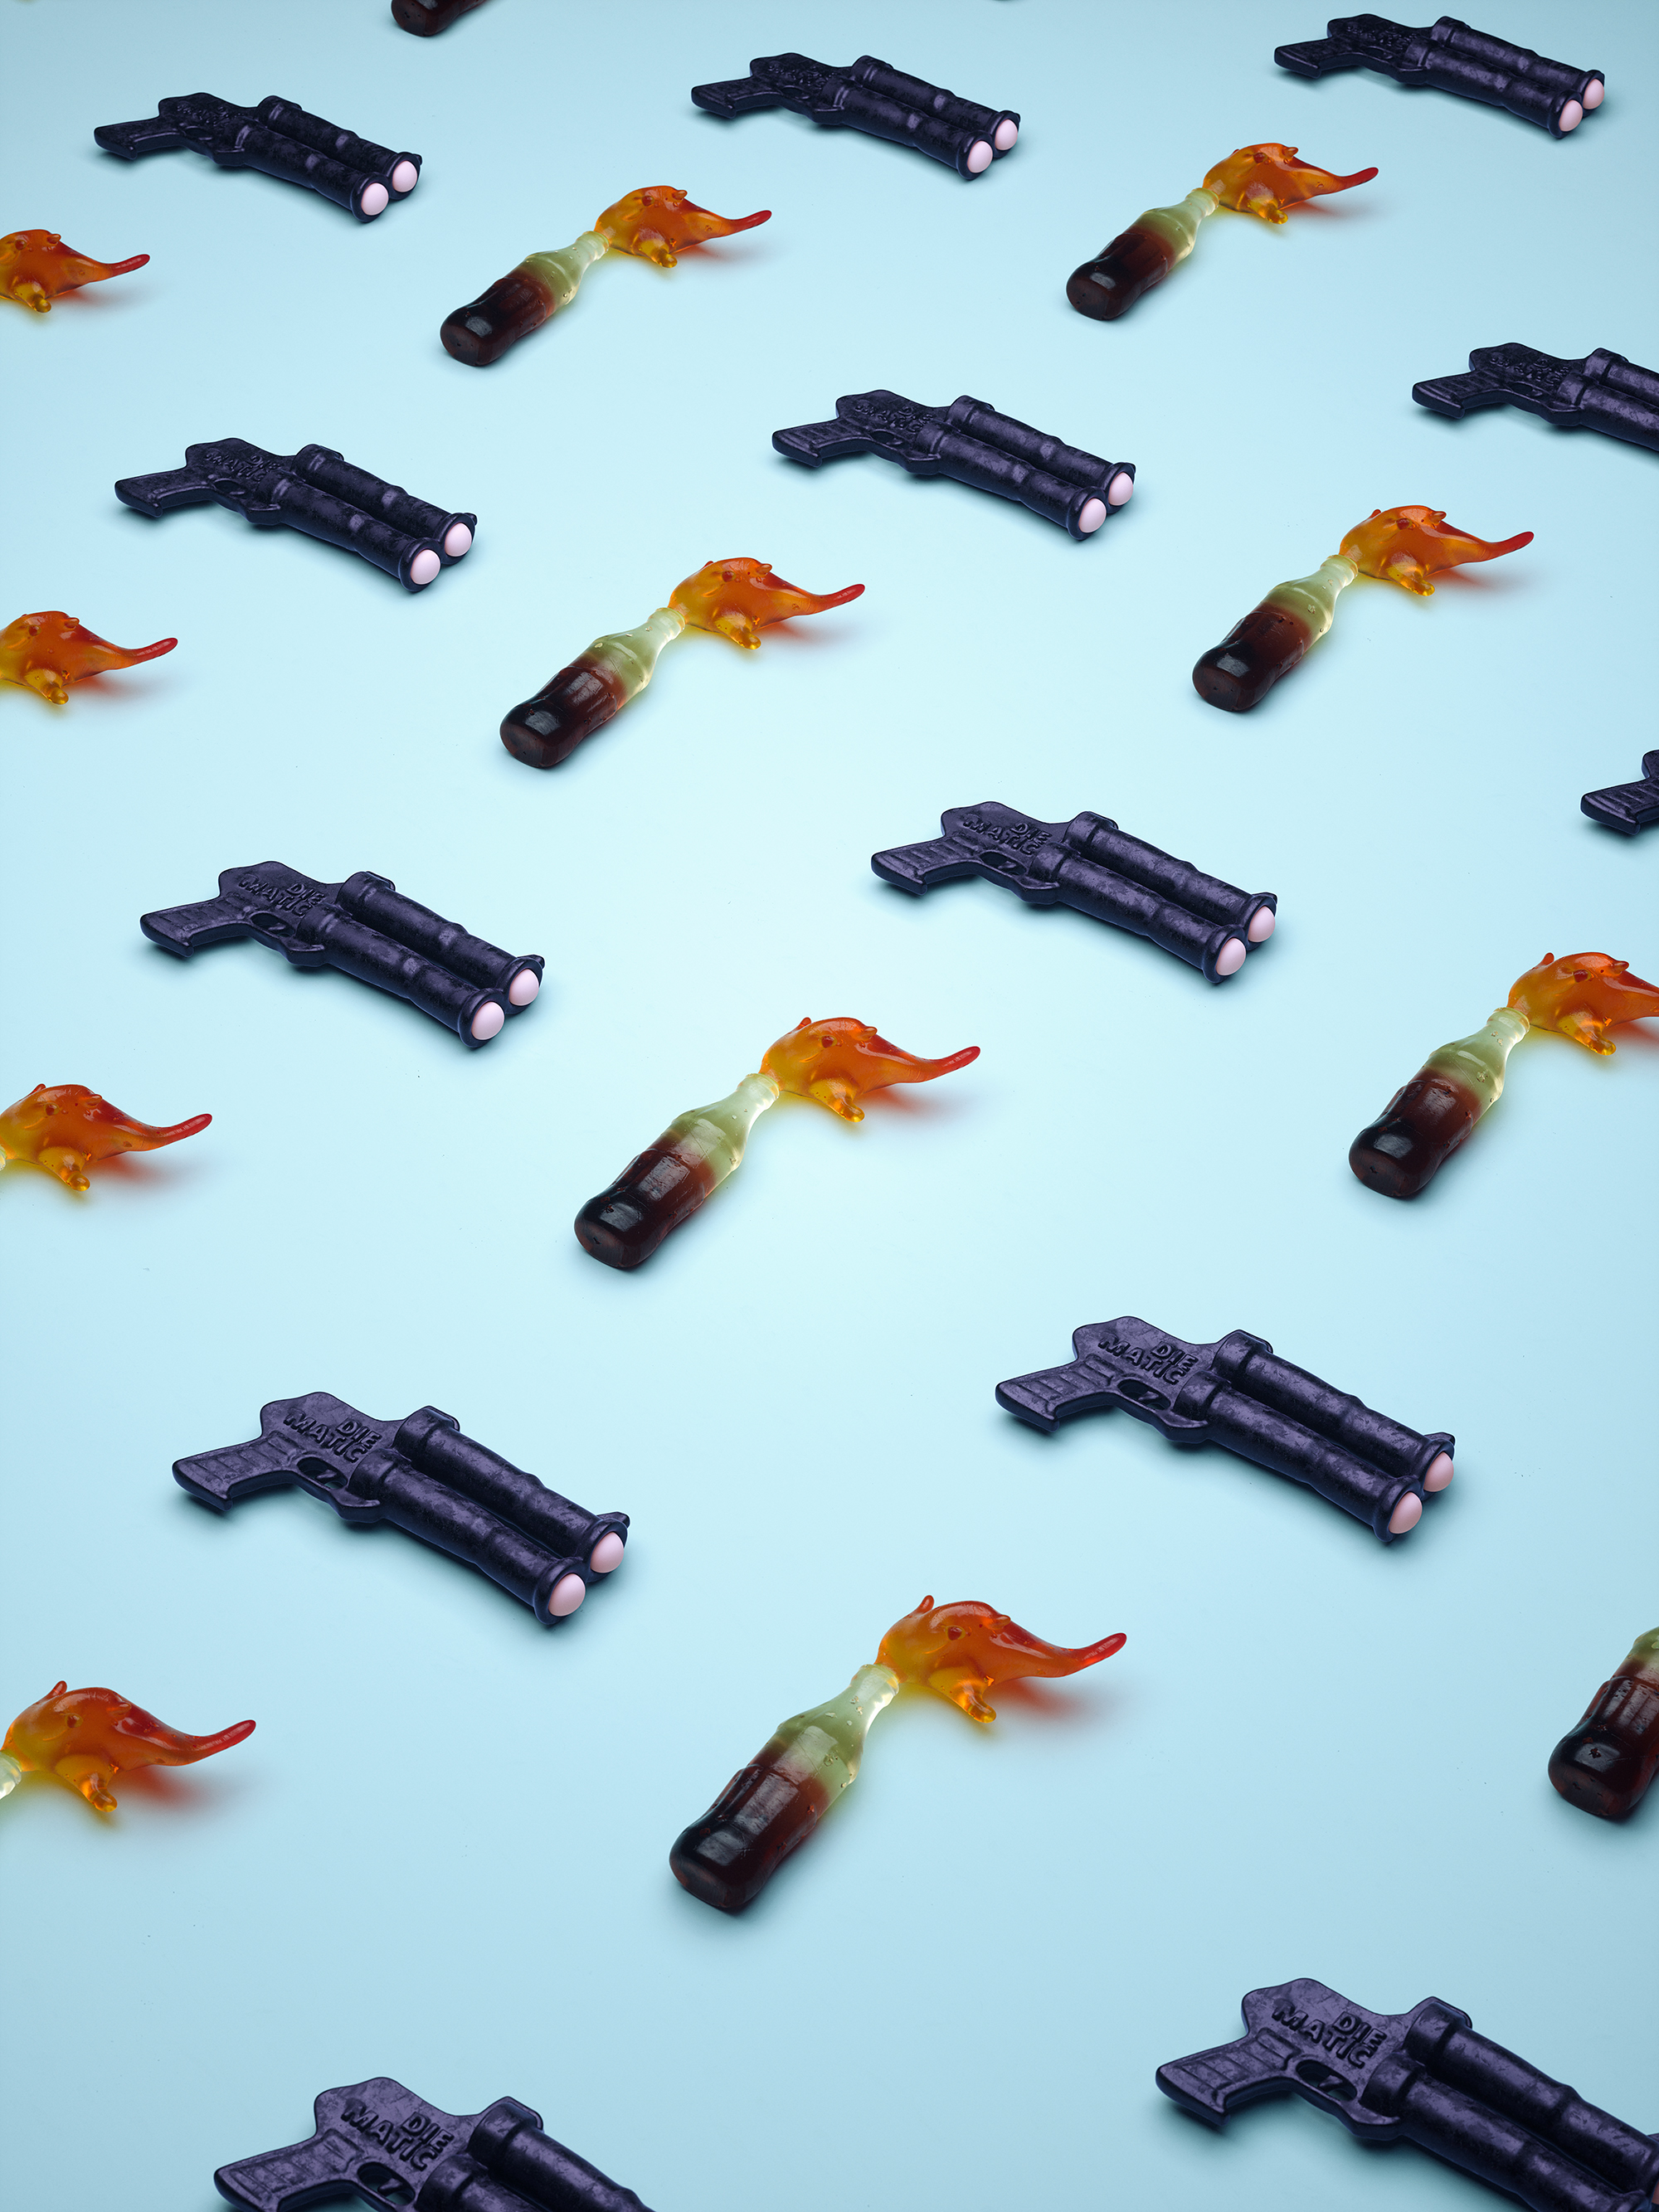 To The Last Candy by Cristian Girotto, weapons like candy